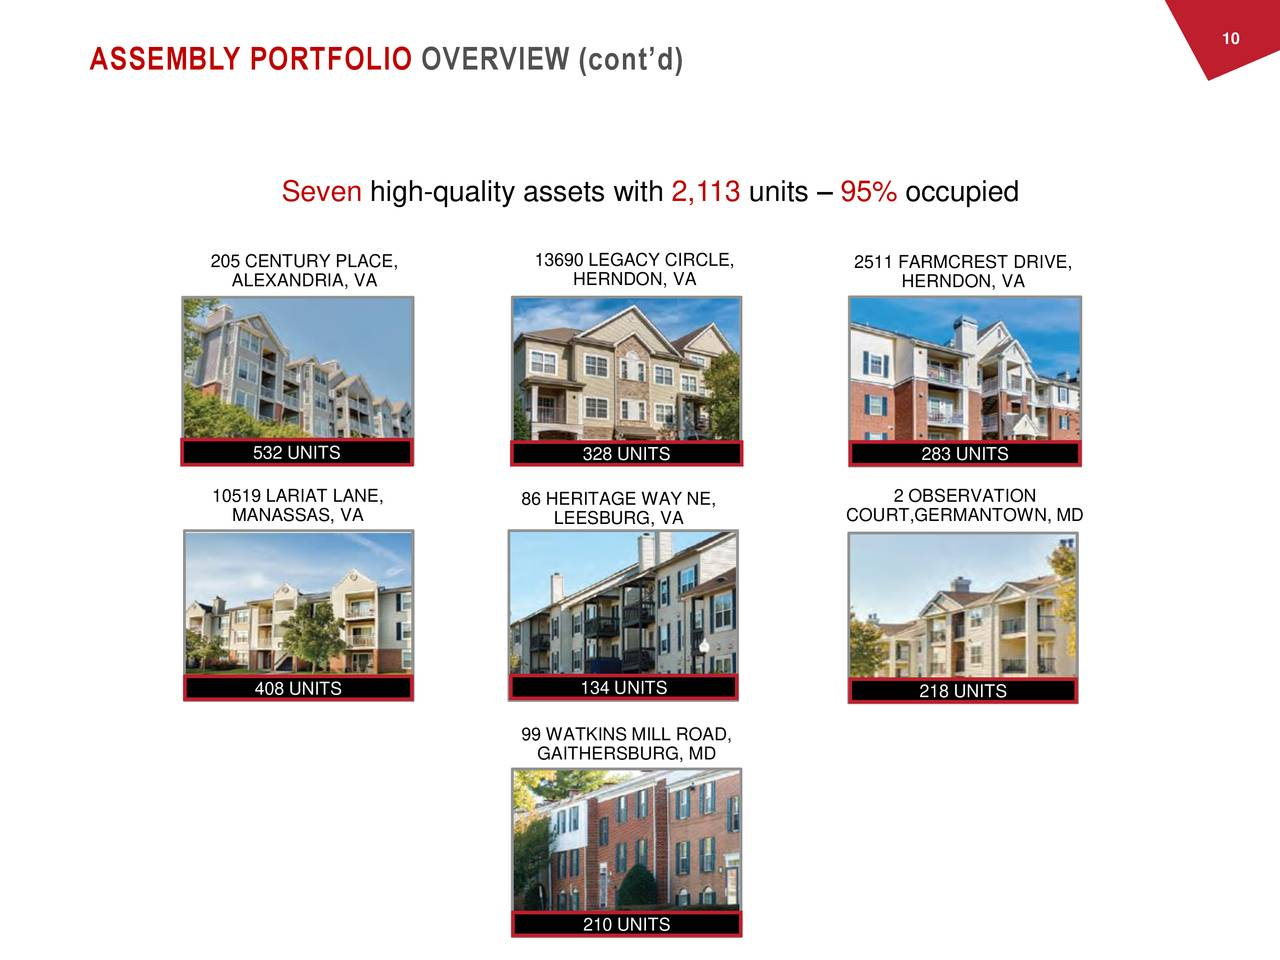 ASSEMBLY PORTFOLIO OVERVIEW (cont'd) Seven high-quality assets with 2,113 units – 95% occupied 205 CENTURY PLACE, 13690 LEGACY CIRCLE, 2511 FARMCREST DRIVE, ALEXANDRIA, VA HERNDON, VA HERNDON, VA 532 UNITS 328 UNITS 283 UNITS 519 LARIAT LANE, 86 HERITAGE WAY NE, 2 OBSERVATION MANASSAS, VA COURT,GERMANTOWN, MD LEESBURG, VA 134 UNITS 408 UNITS 218 UNITS 99 WATKINS MILL ROAD, GAITHERSBURG, MD 210 UNITS